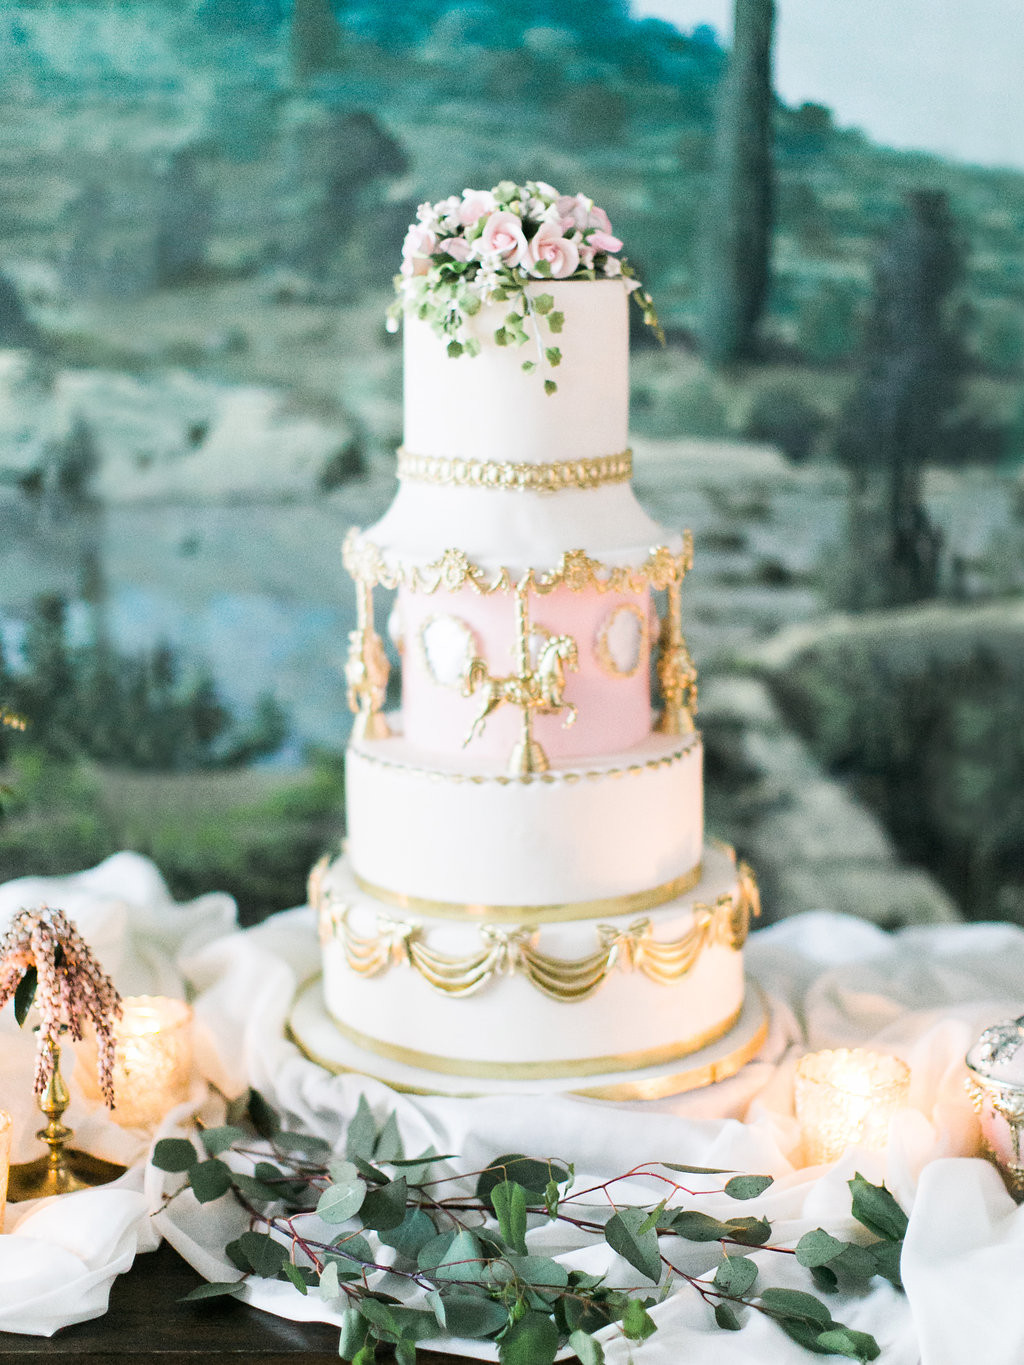 Cinderalla Wedding Cakes  Cinderella Wedding Cake Elizabeth Anne Designs The